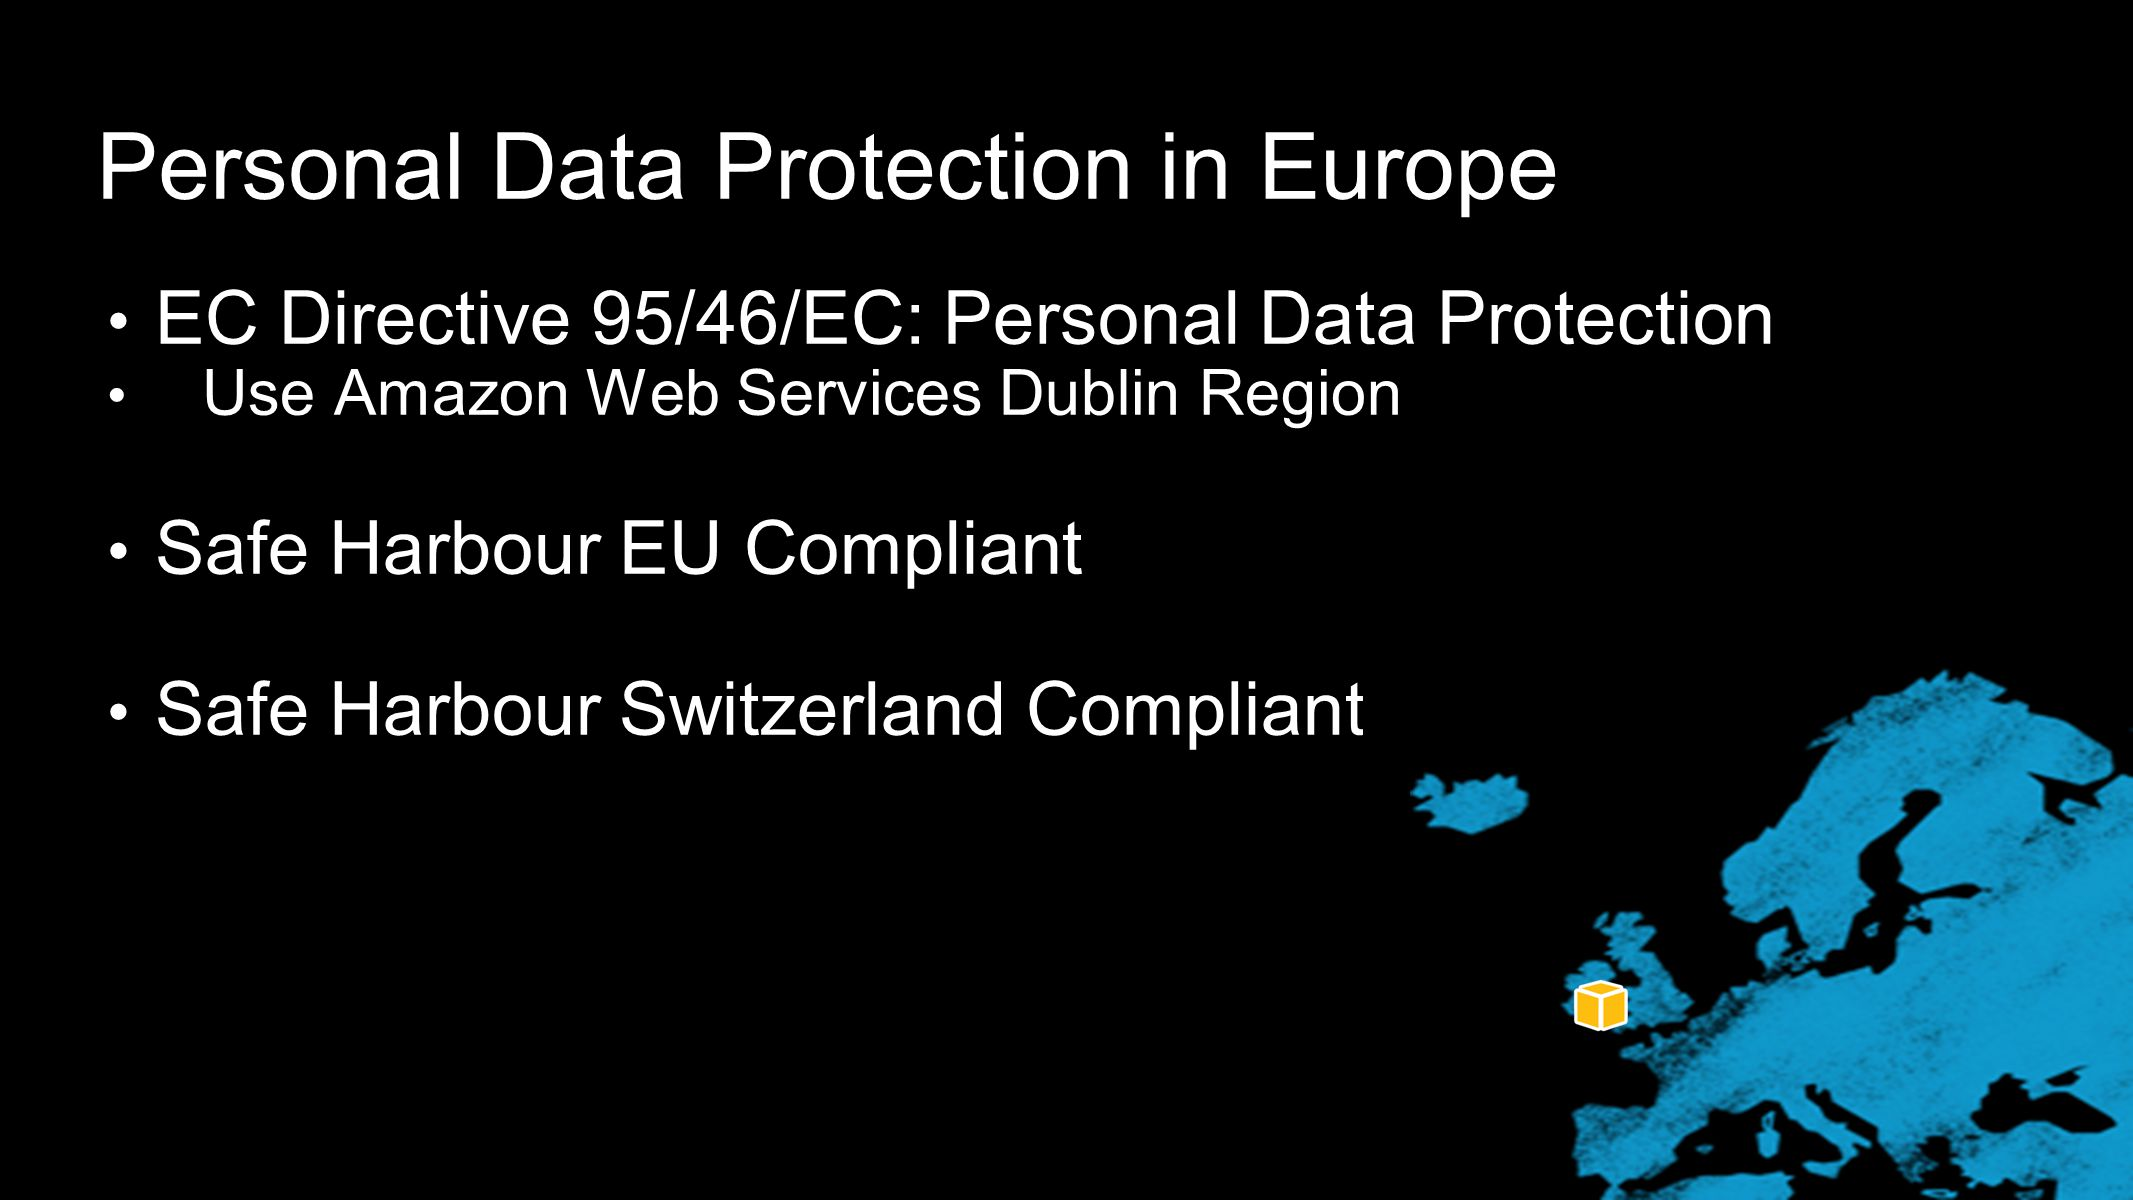 Personal Data Protection in Europe